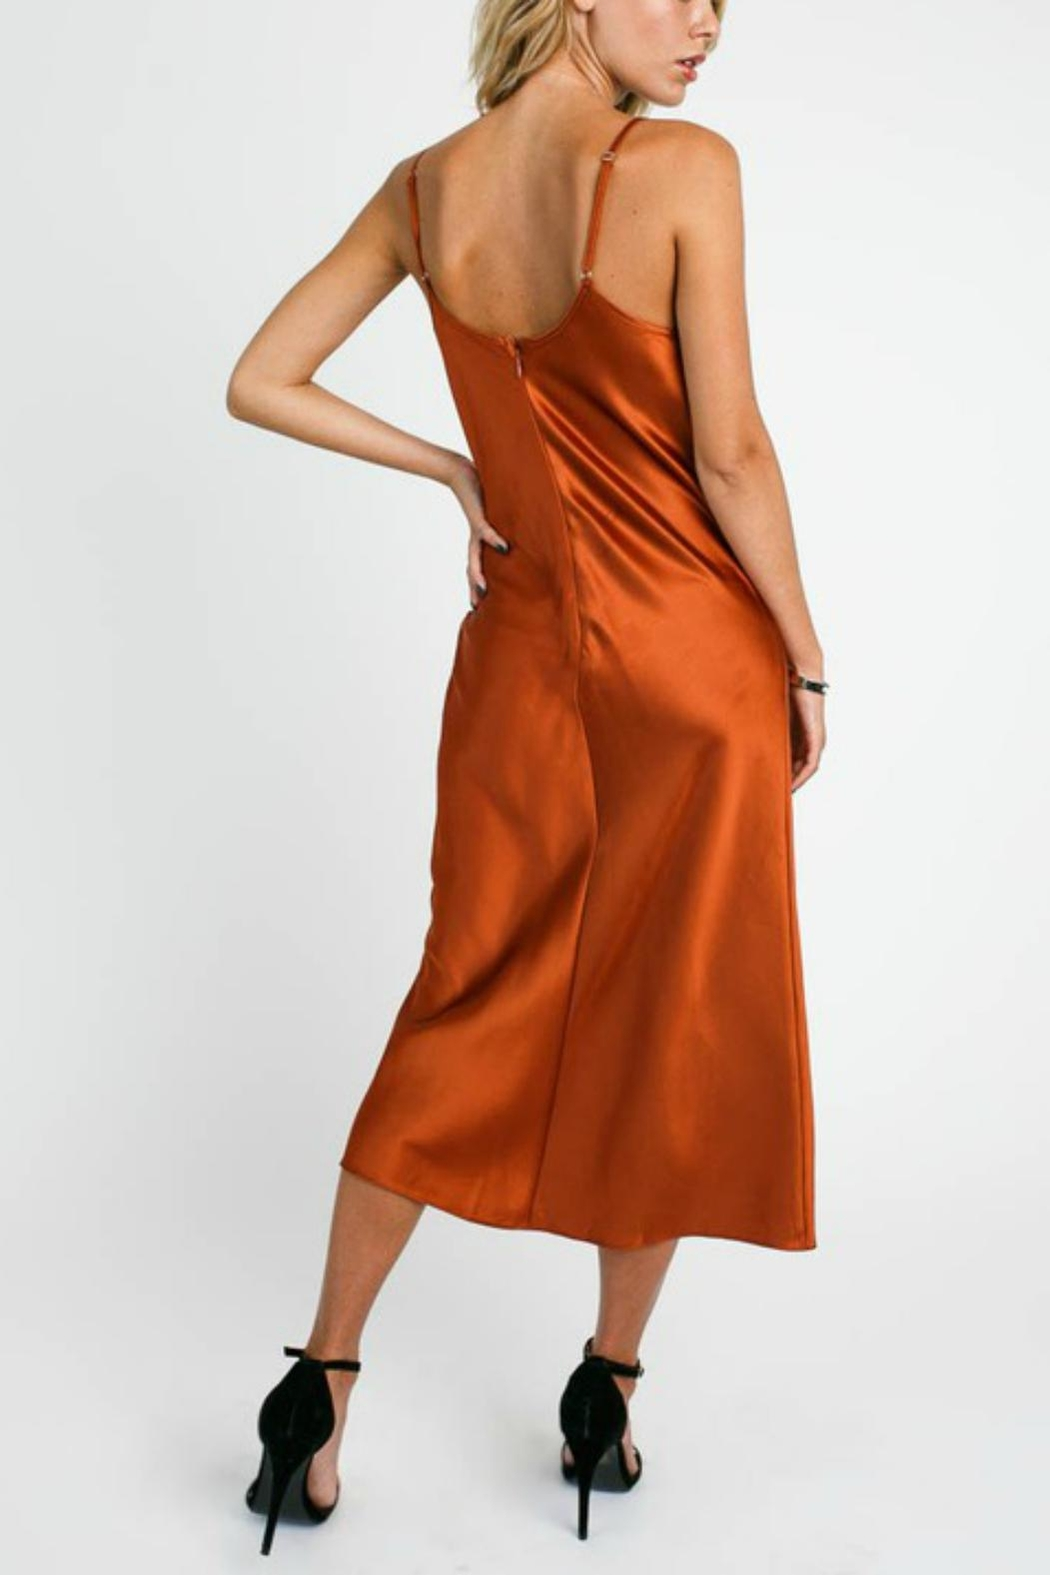 Pretty Little Things Satin Slip Dress - Side Cropped Image